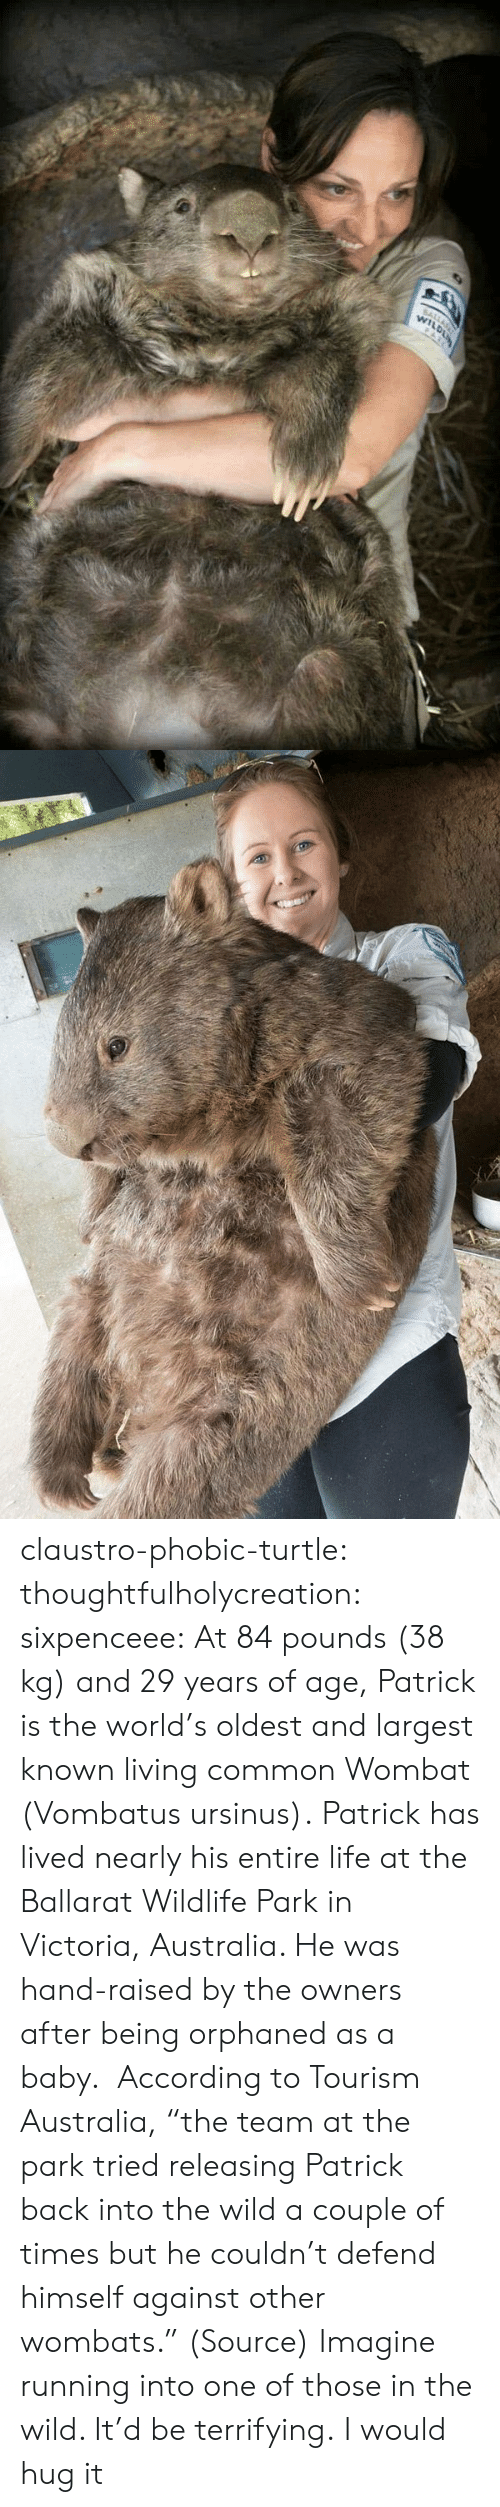 "Life, Tumblr, and Australia: claustro-phobic-turtle:  thoughtfulholycreation:  sixpenceee:   At 84 pounds (38 kg) and 29 years of age, Patrick is the world's oldest and largest known living common Wombat (Vombatus ursinus). Patrick has lived nearly his entire life at the Ballarat Wildlife Park in Victoria, Australia. He was hand-raised by the owners after being orphaned as a baby.  According to Tourism Australia, ""the team at the park tried releasing Patrick back into the wild a couple of times but he couldn't defend himself against other wombats."" (Source)   Imagine running into one of those in the wild. It'd be terrifying.   I would hug it"